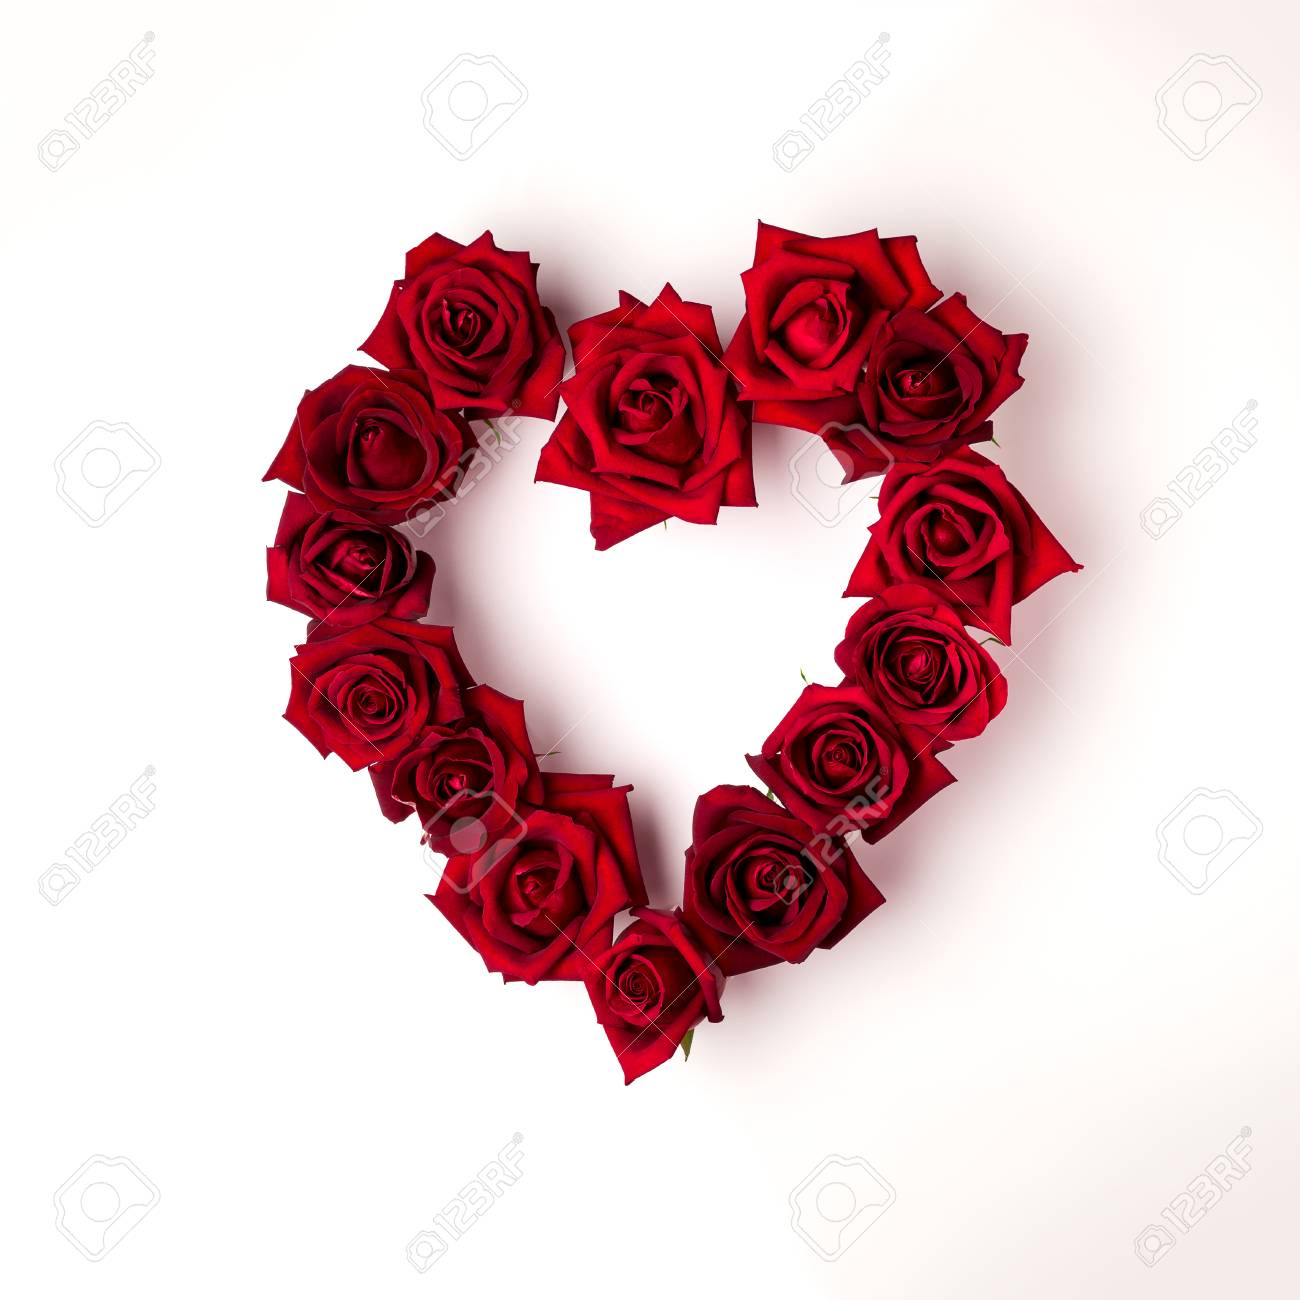 Top View Image Of Heart Shape Red Rose Flowers On White Background